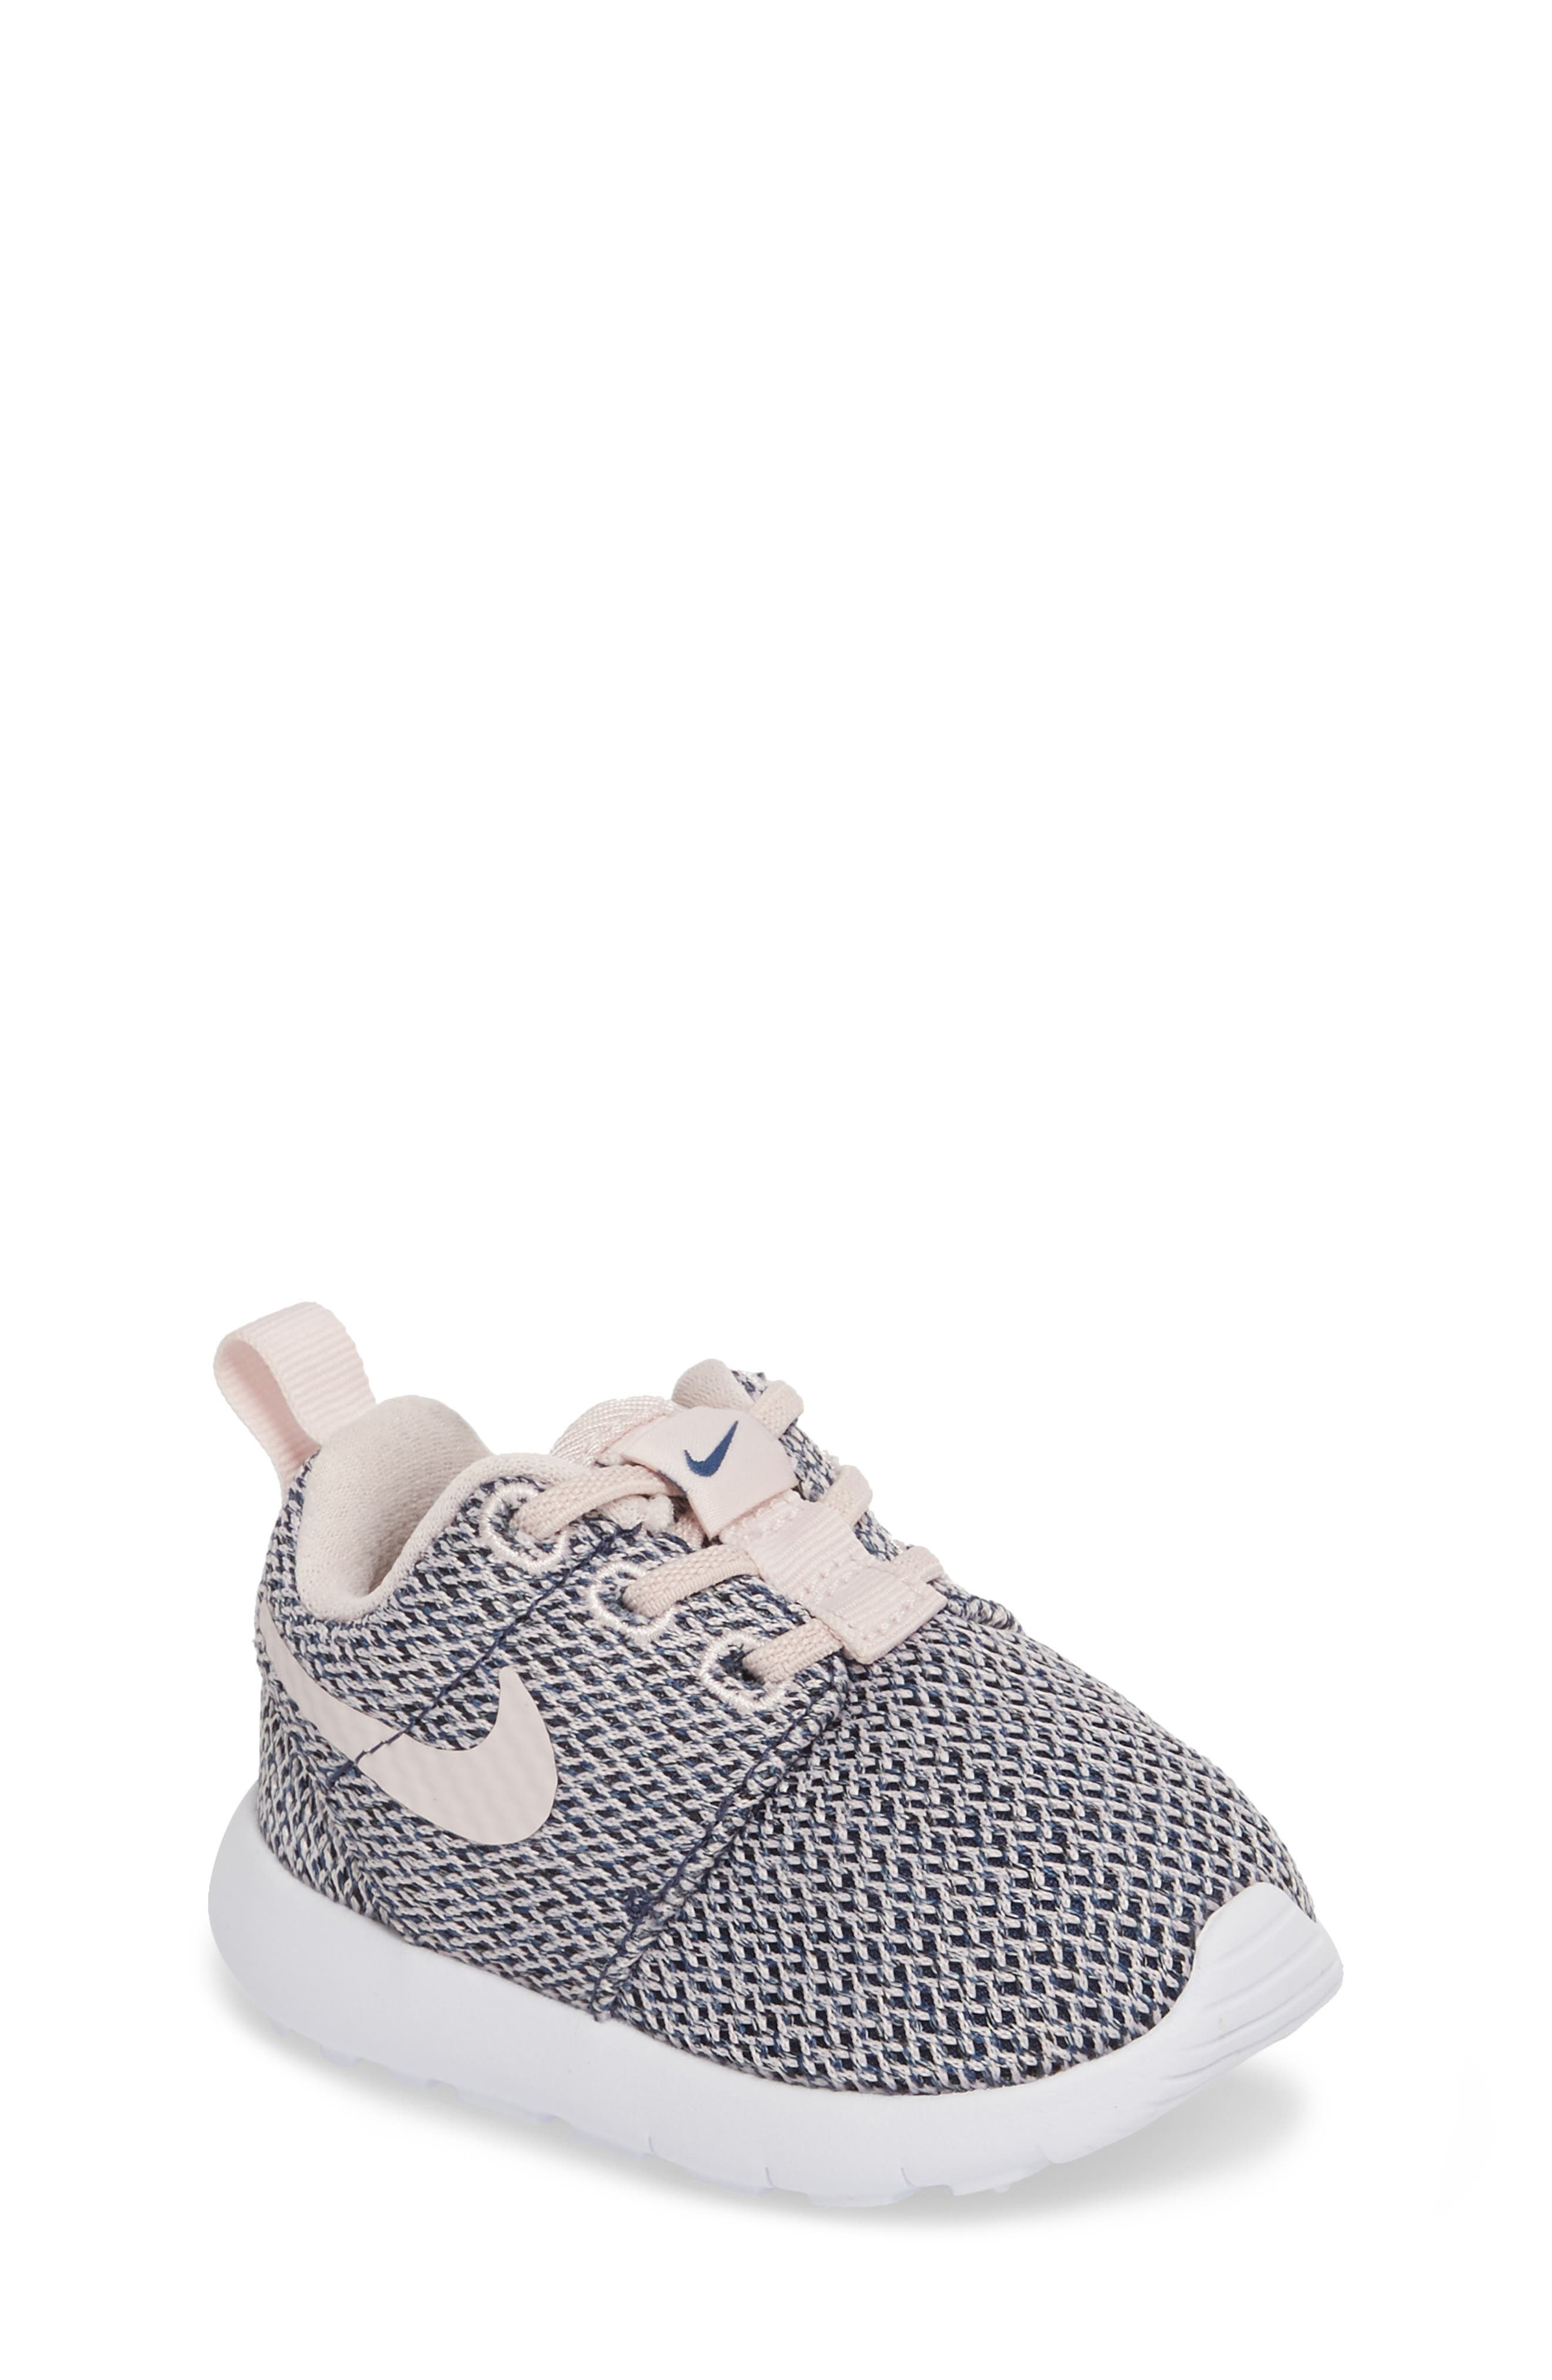 Roshe Run Sneaker,                             Main thumbnail 1, color,                             414